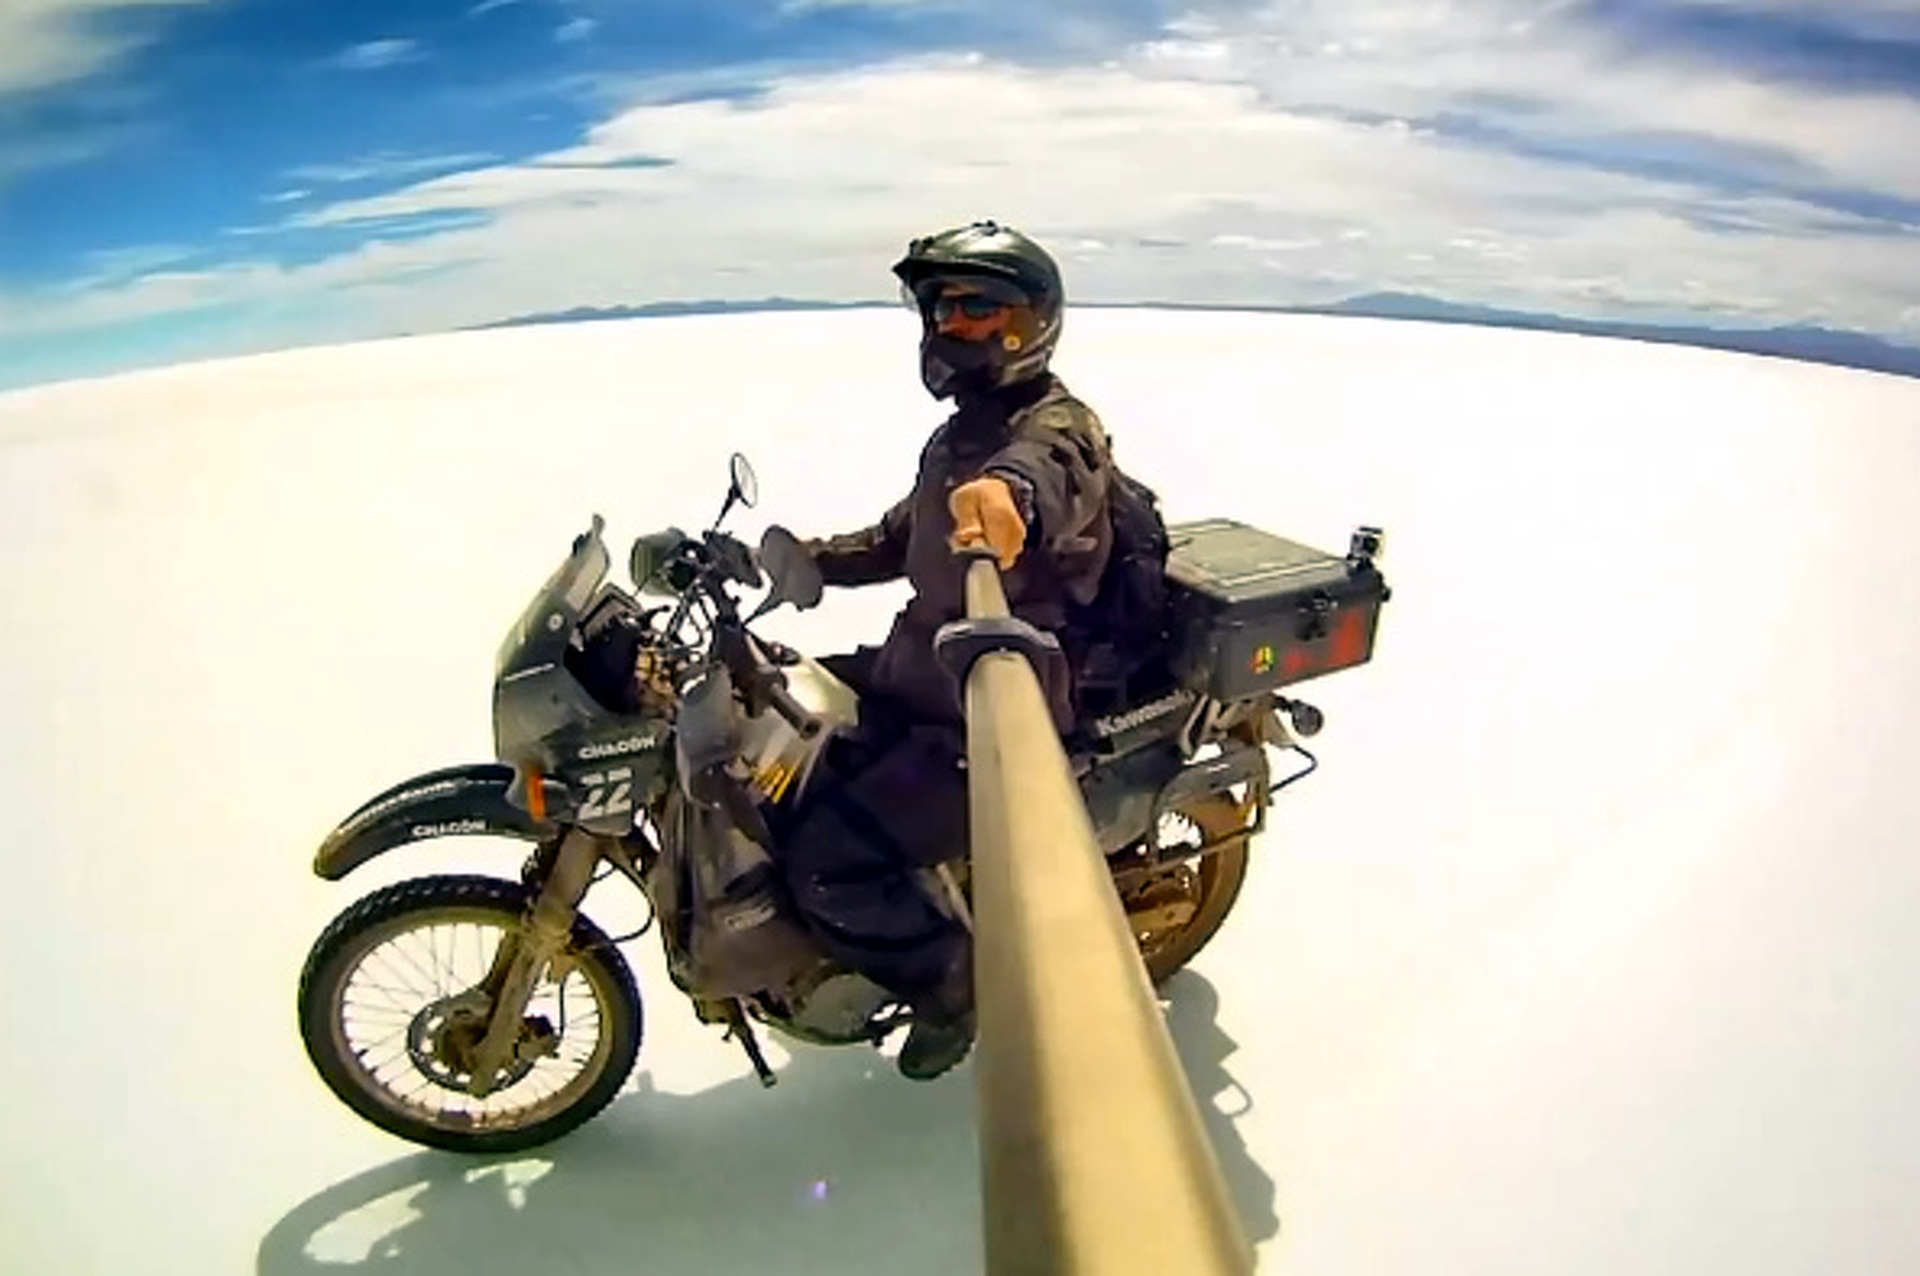 Video: Modern Motorcycle Diaries Follows Che's Footsteps